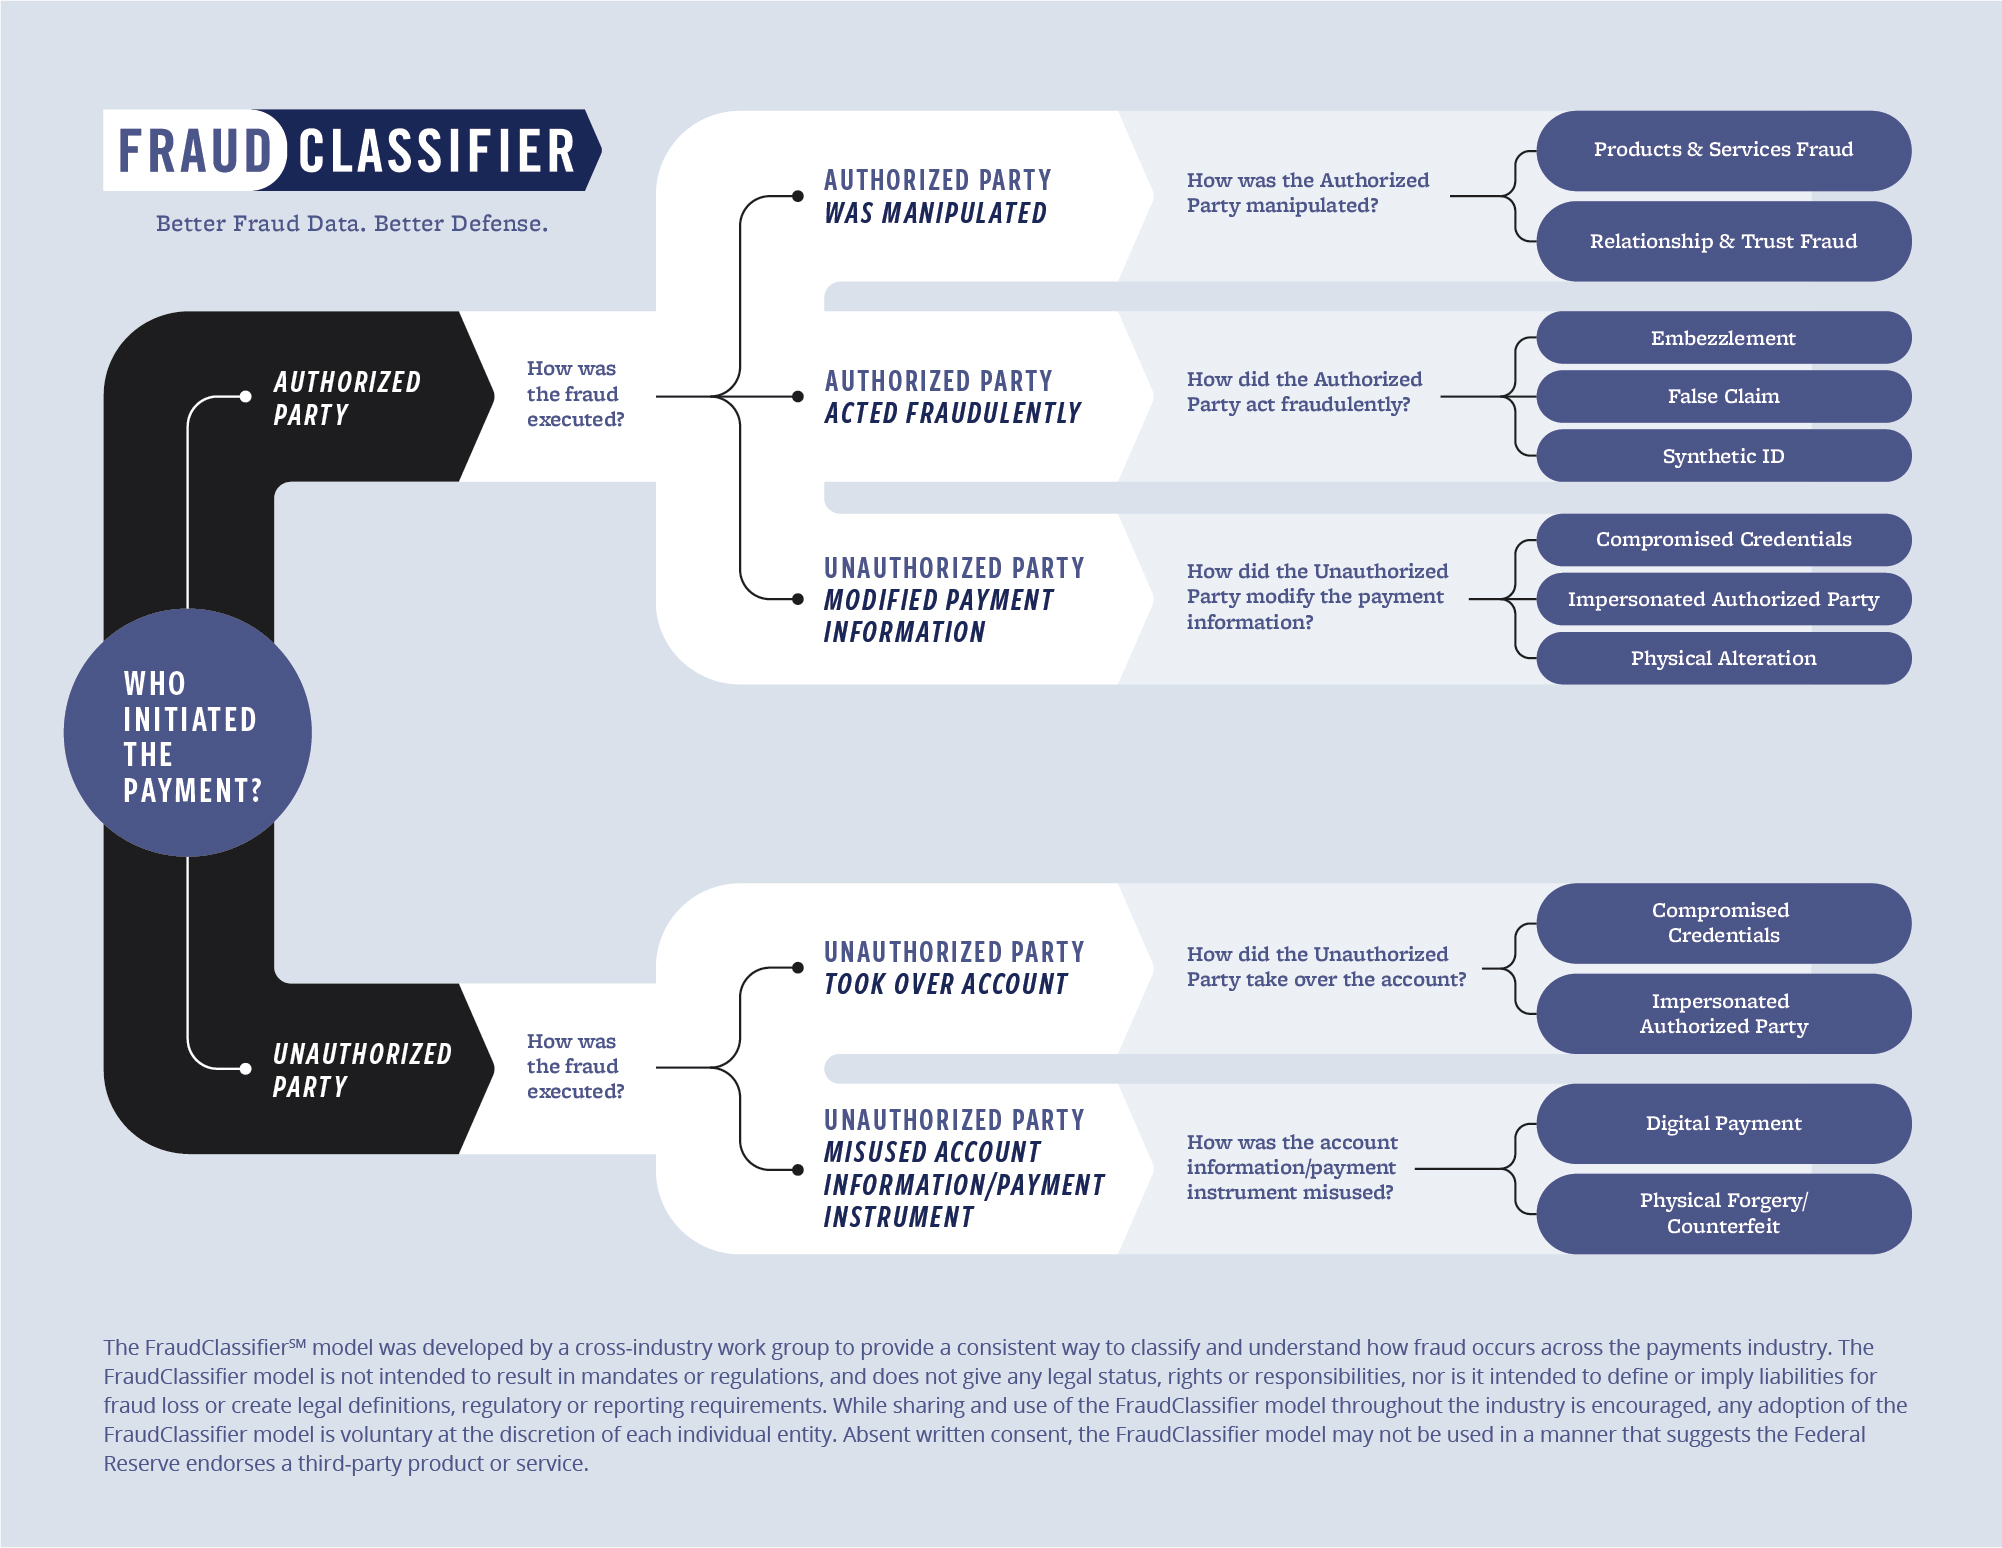 The FraudClassifier model shows two paths to classify fraud involving payments. The model focuses on a series of questions beginning with who initiated the payment to differentiate payments initiated by authorized or unauthorized parties.